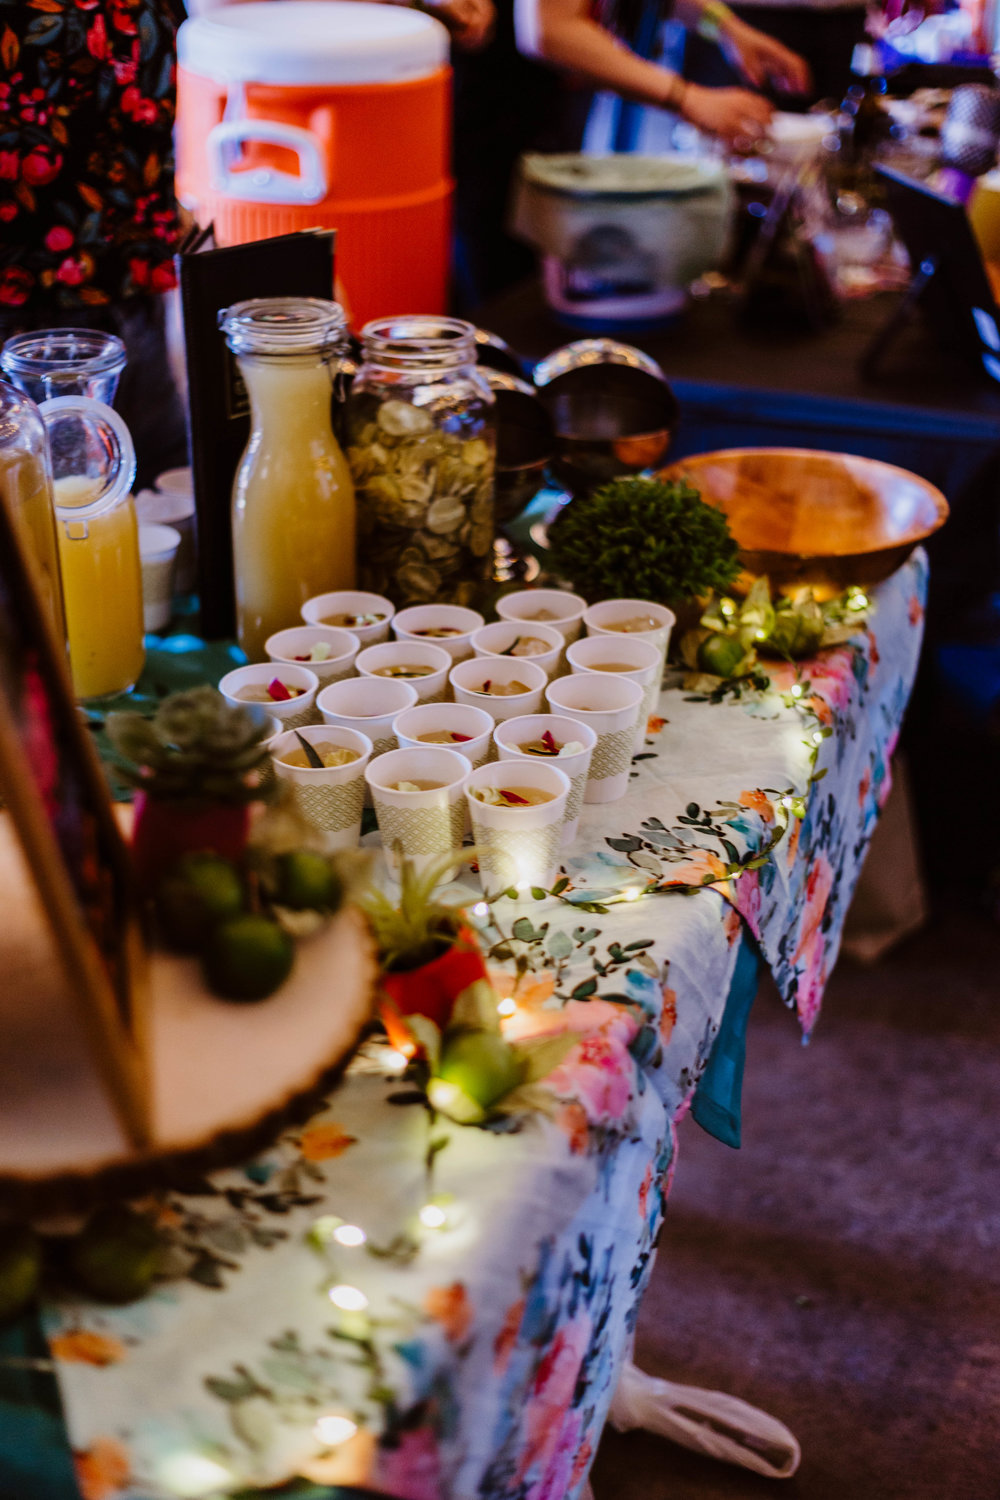 Some of the many displays of hand-crafted margaritas at the event.